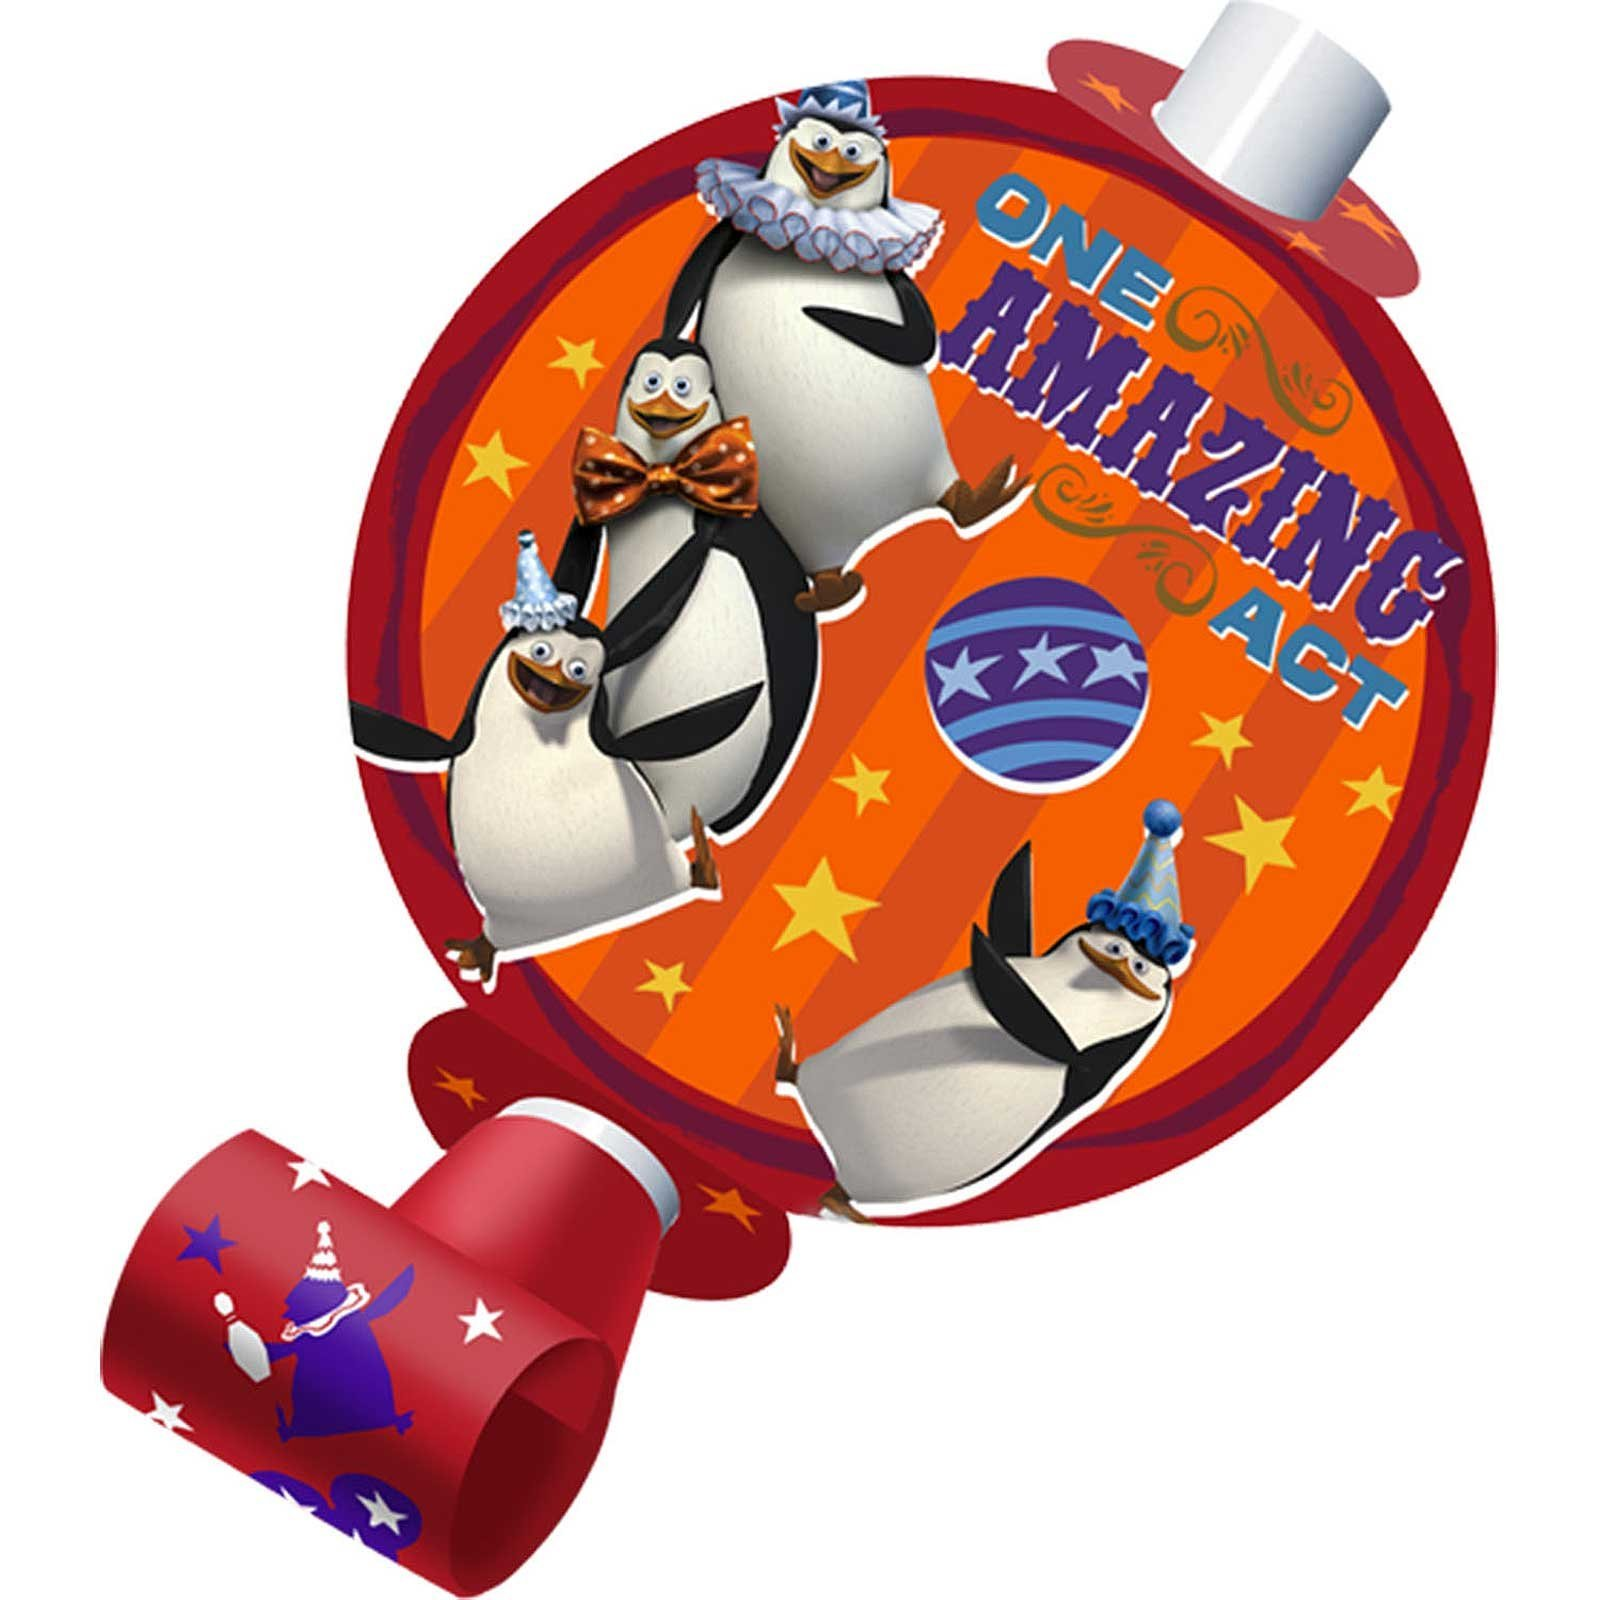 Madagascar 3 Blowouts (8) Party Accessory by Hallmark